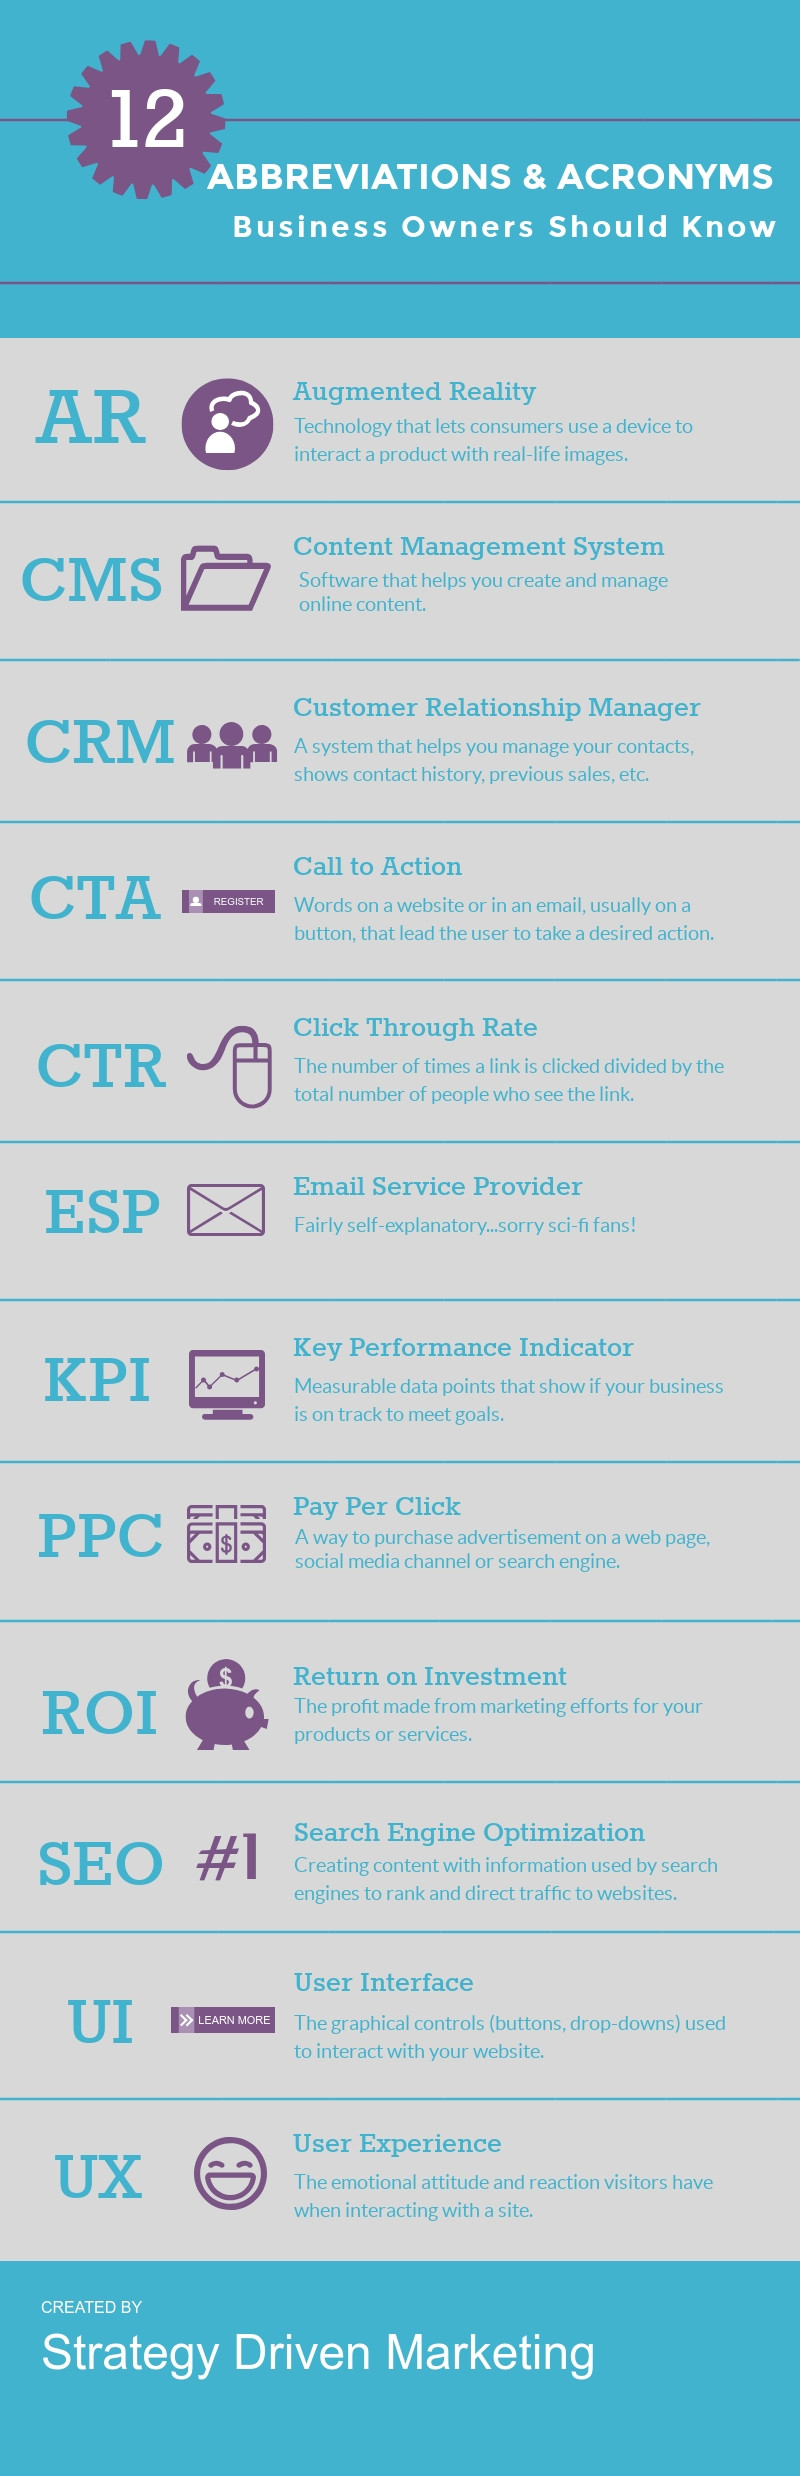 Infographic explaining marketing and business abbreviations and acronyms